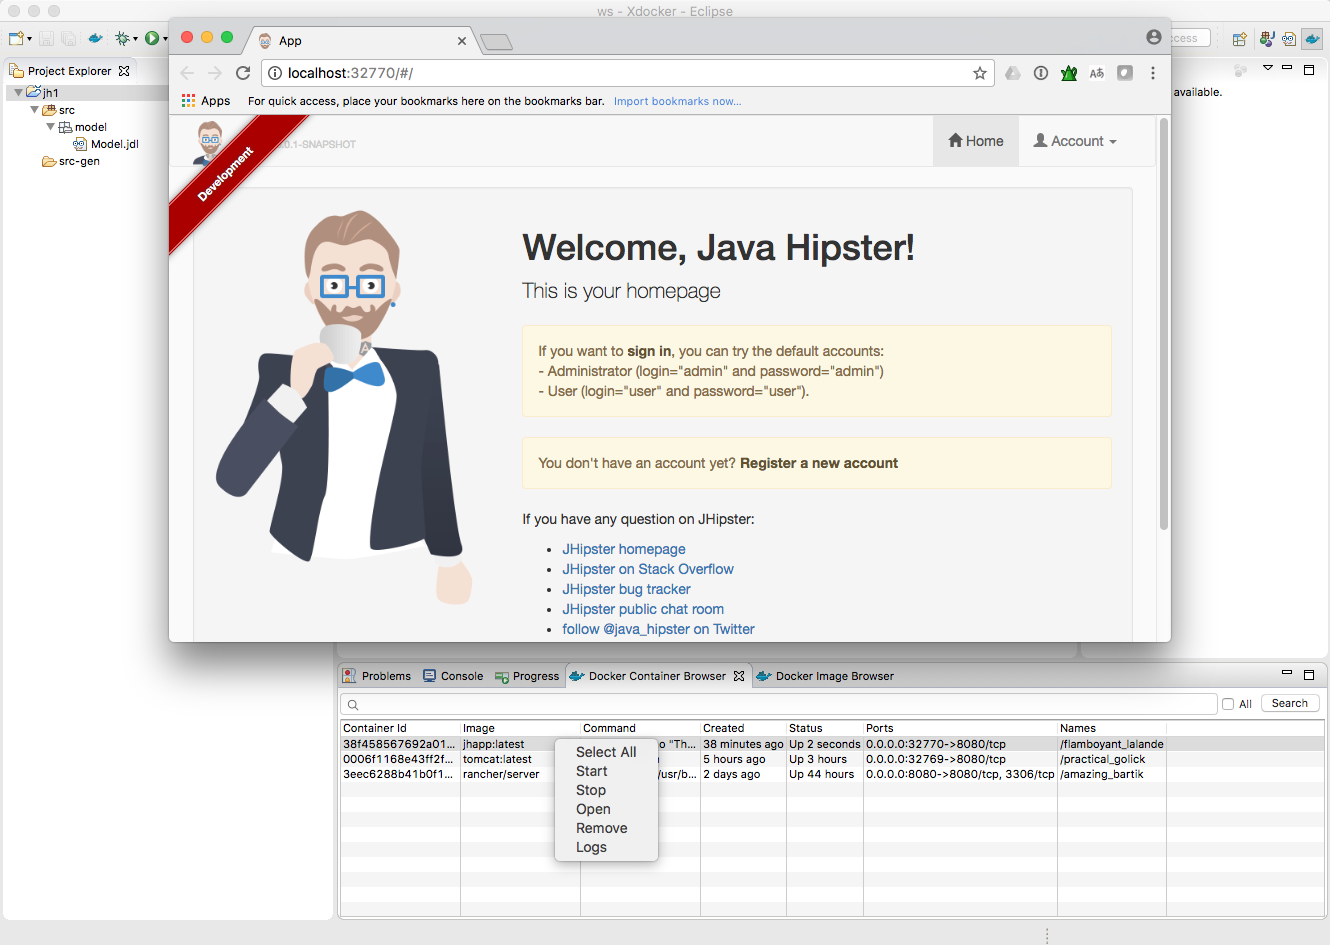 JHipster IDE | Eclipse Plugins, Bundles and Products